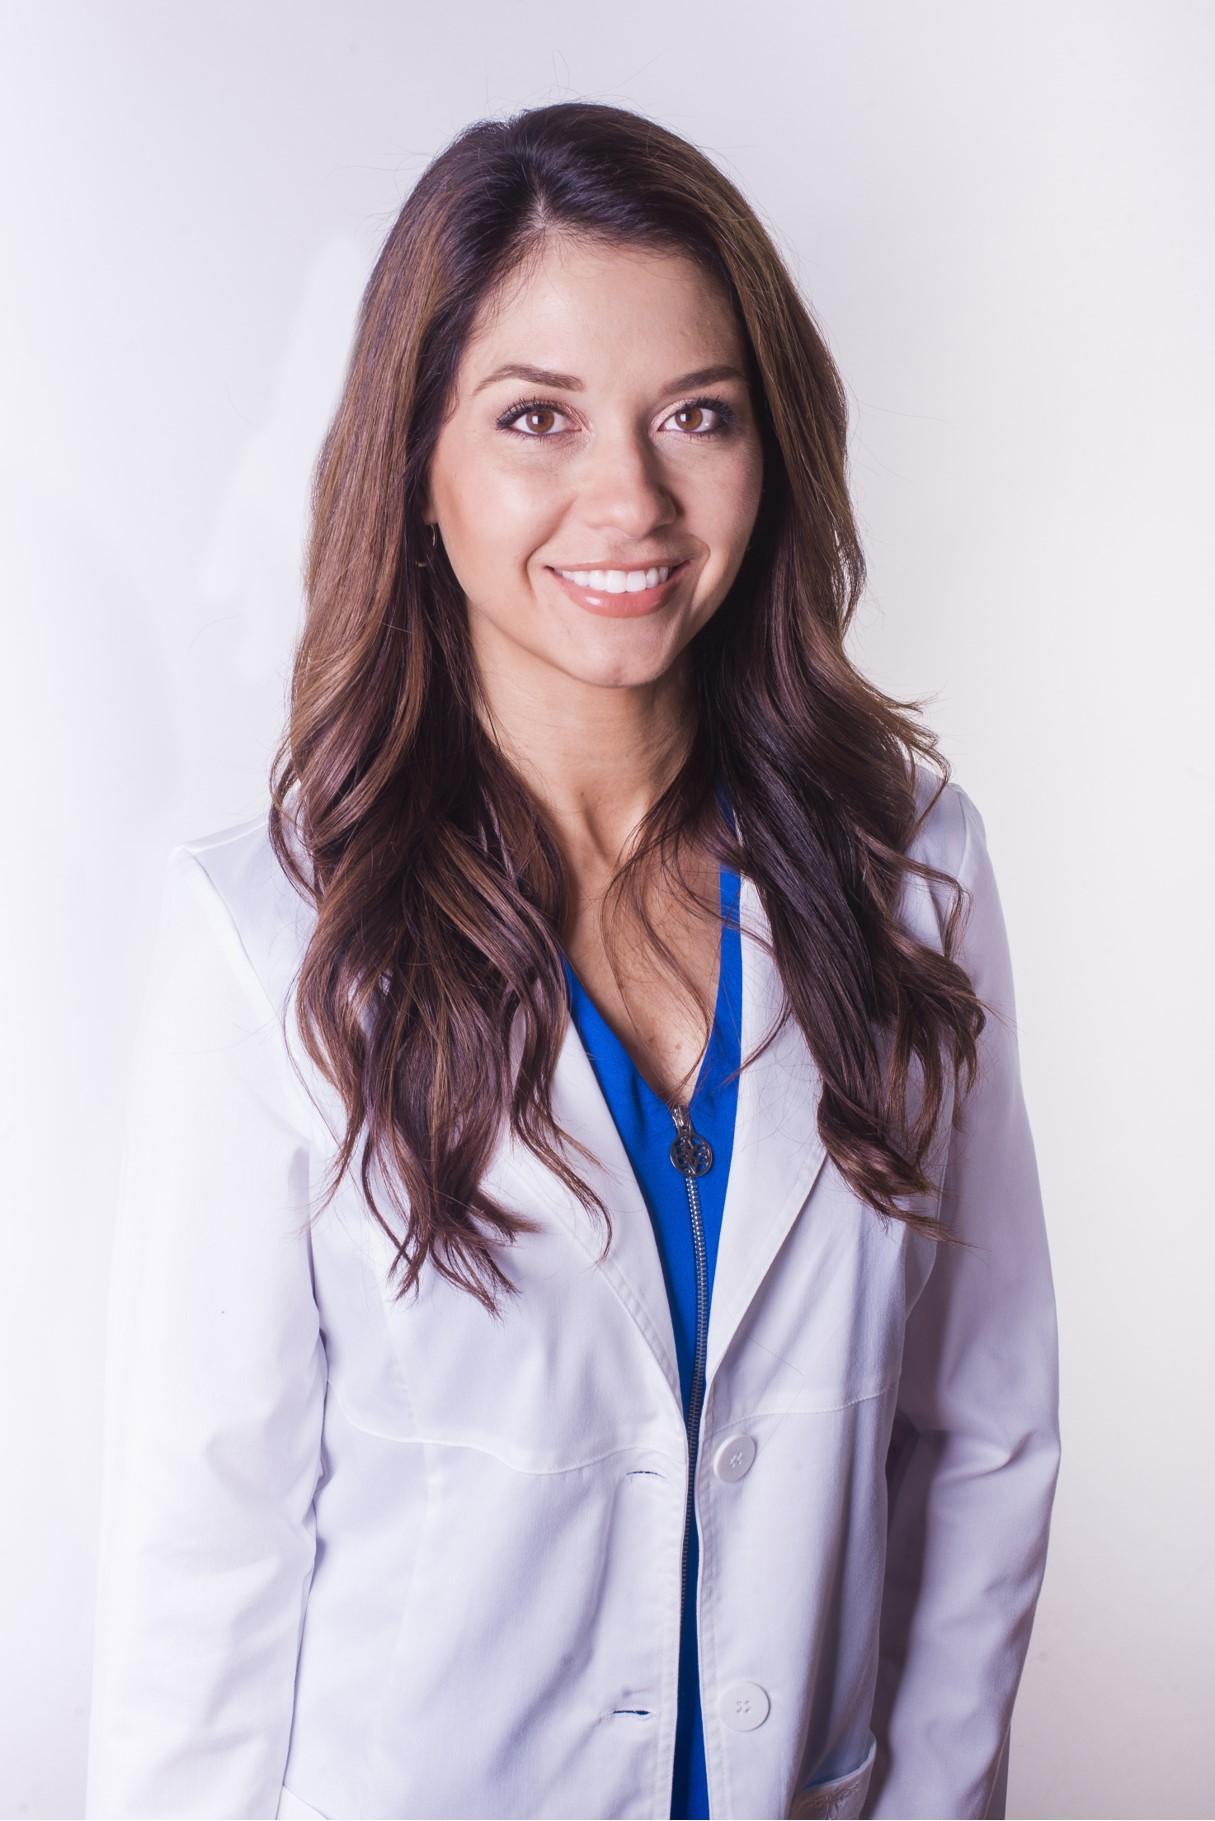 Profile Photo of Shelly - Franchisee and Hearing Instrument Specialist